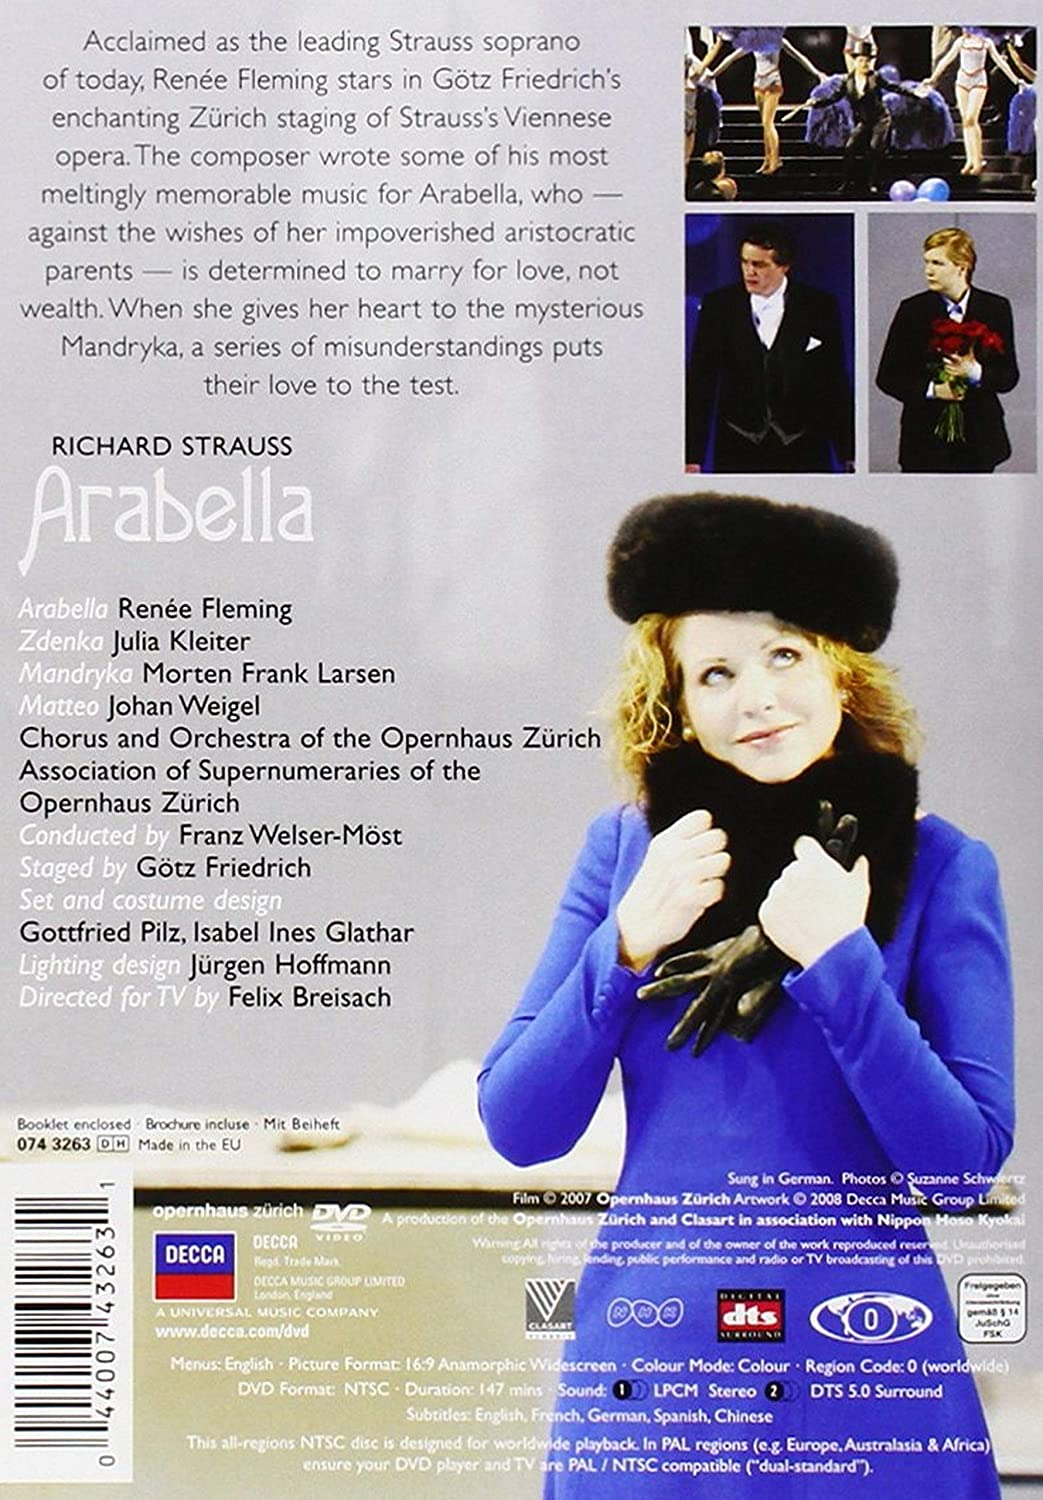 Amazon Com Strauss Arabella Renee Fleming Morten Frank Larsen Julia Kleiter Johan Weigel Zurich Opera House Chorus Orchestra Franz Welser Moest Conductor Gotz Friedrich Movies Tv